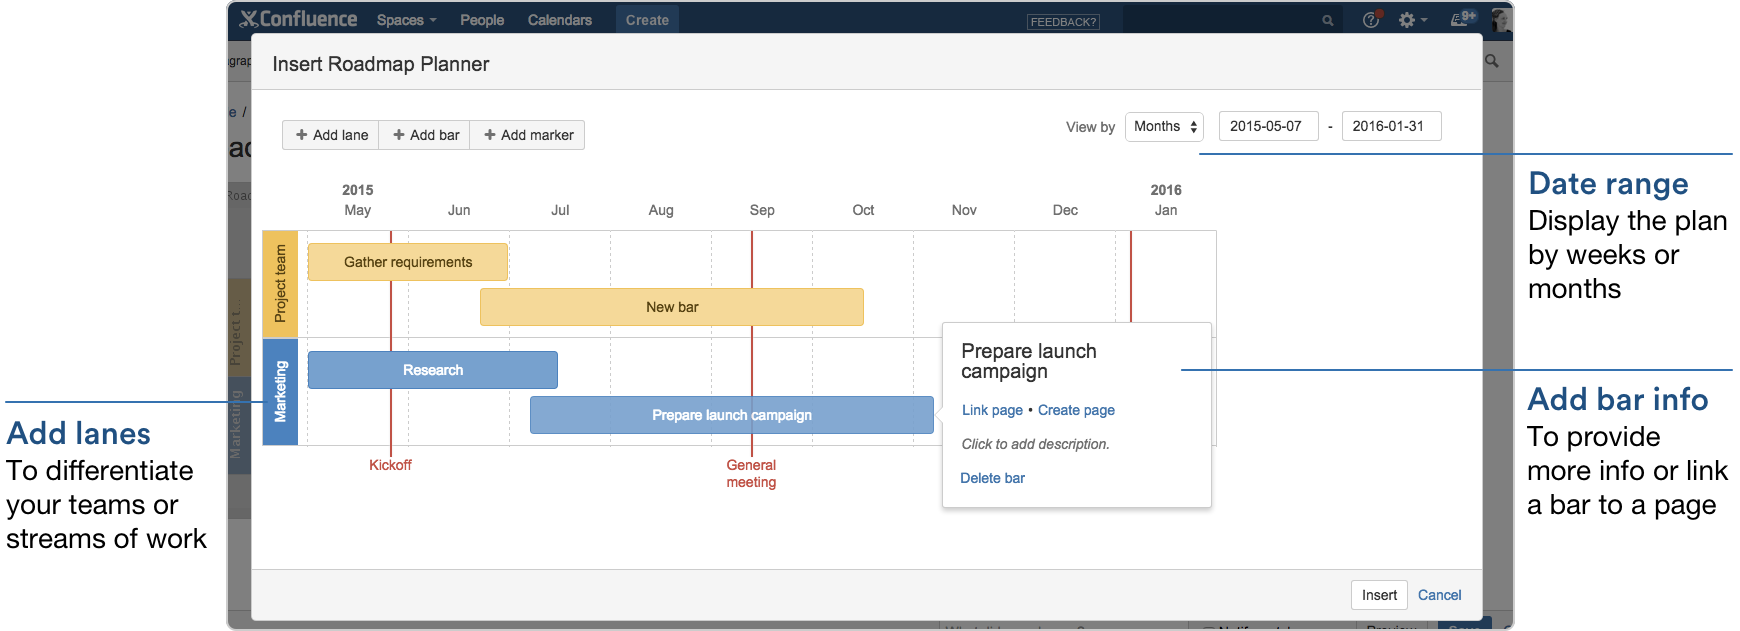 product review roadmap planner - Visio Confluence